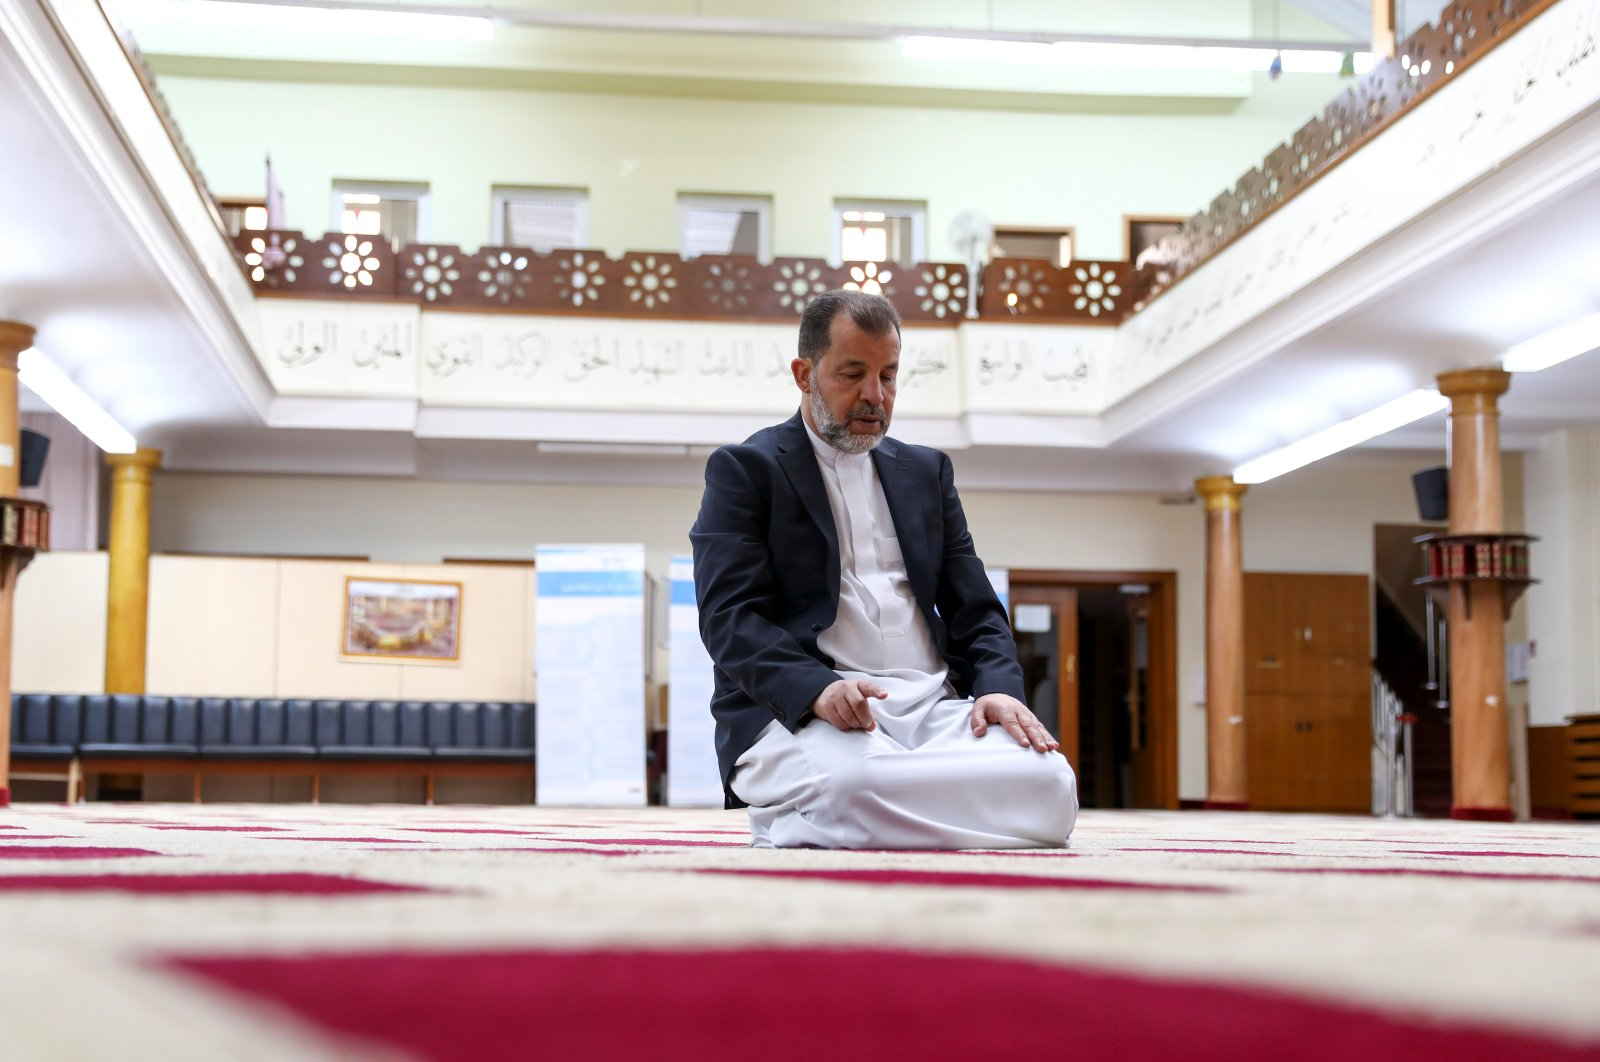 Imam Mohamed Taha Sabri of Dar Assalam Mosque in Neukoelln demonstrates how to perform prayers during an interview with Reuters in the mosque, as the global spread of the coronavirus disease (COVID-19) continues, in Berlin, Germany, April 17, 2020.  (Reuters Photo)